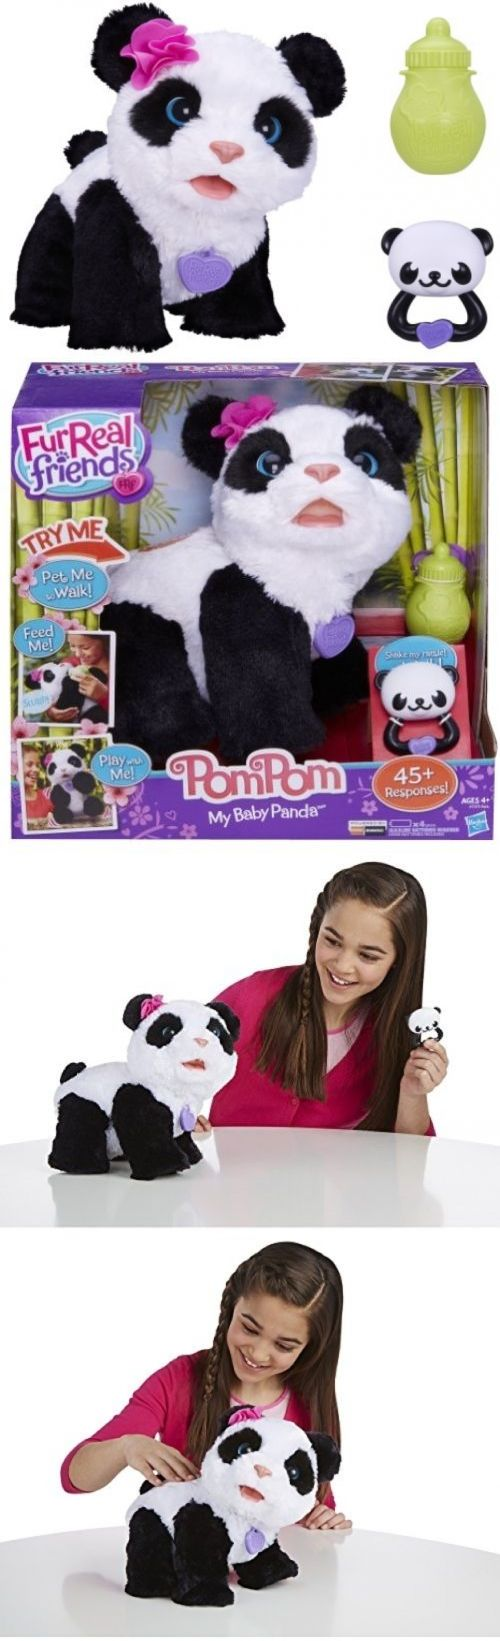 FurReal Friends 38288: Baby Panda Pet Move Sound Friend Pom Interactive Bear Toy Tiger Electronics Fur -> BUY IT NOW ONLY: $87.98 on eBay!